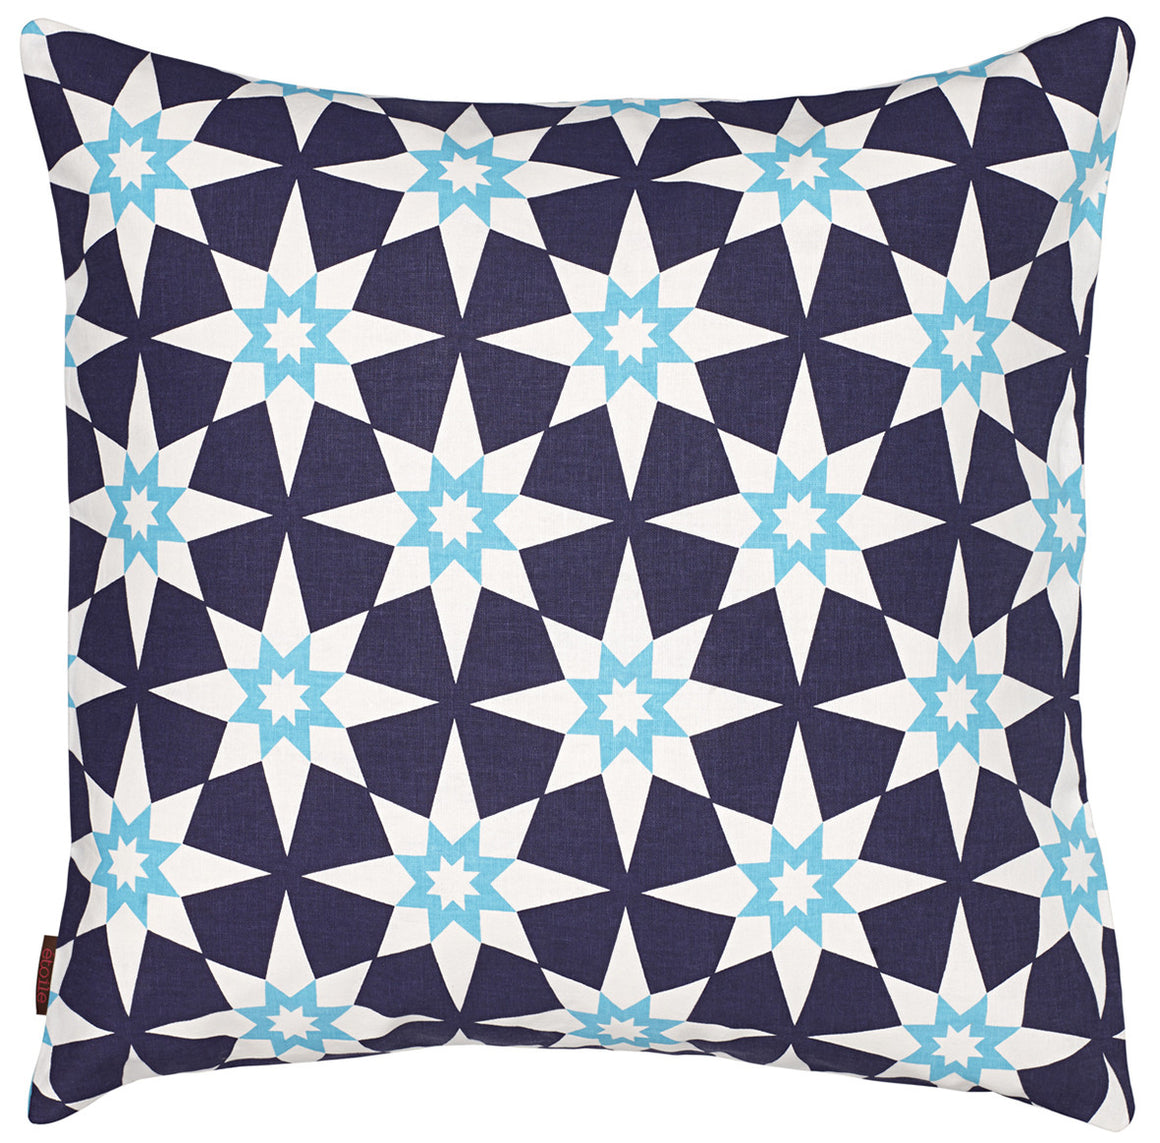 Cadiz Geometric Star Pattern Linen Cushion in Aubergine Purple and Turquoise 55x55cm